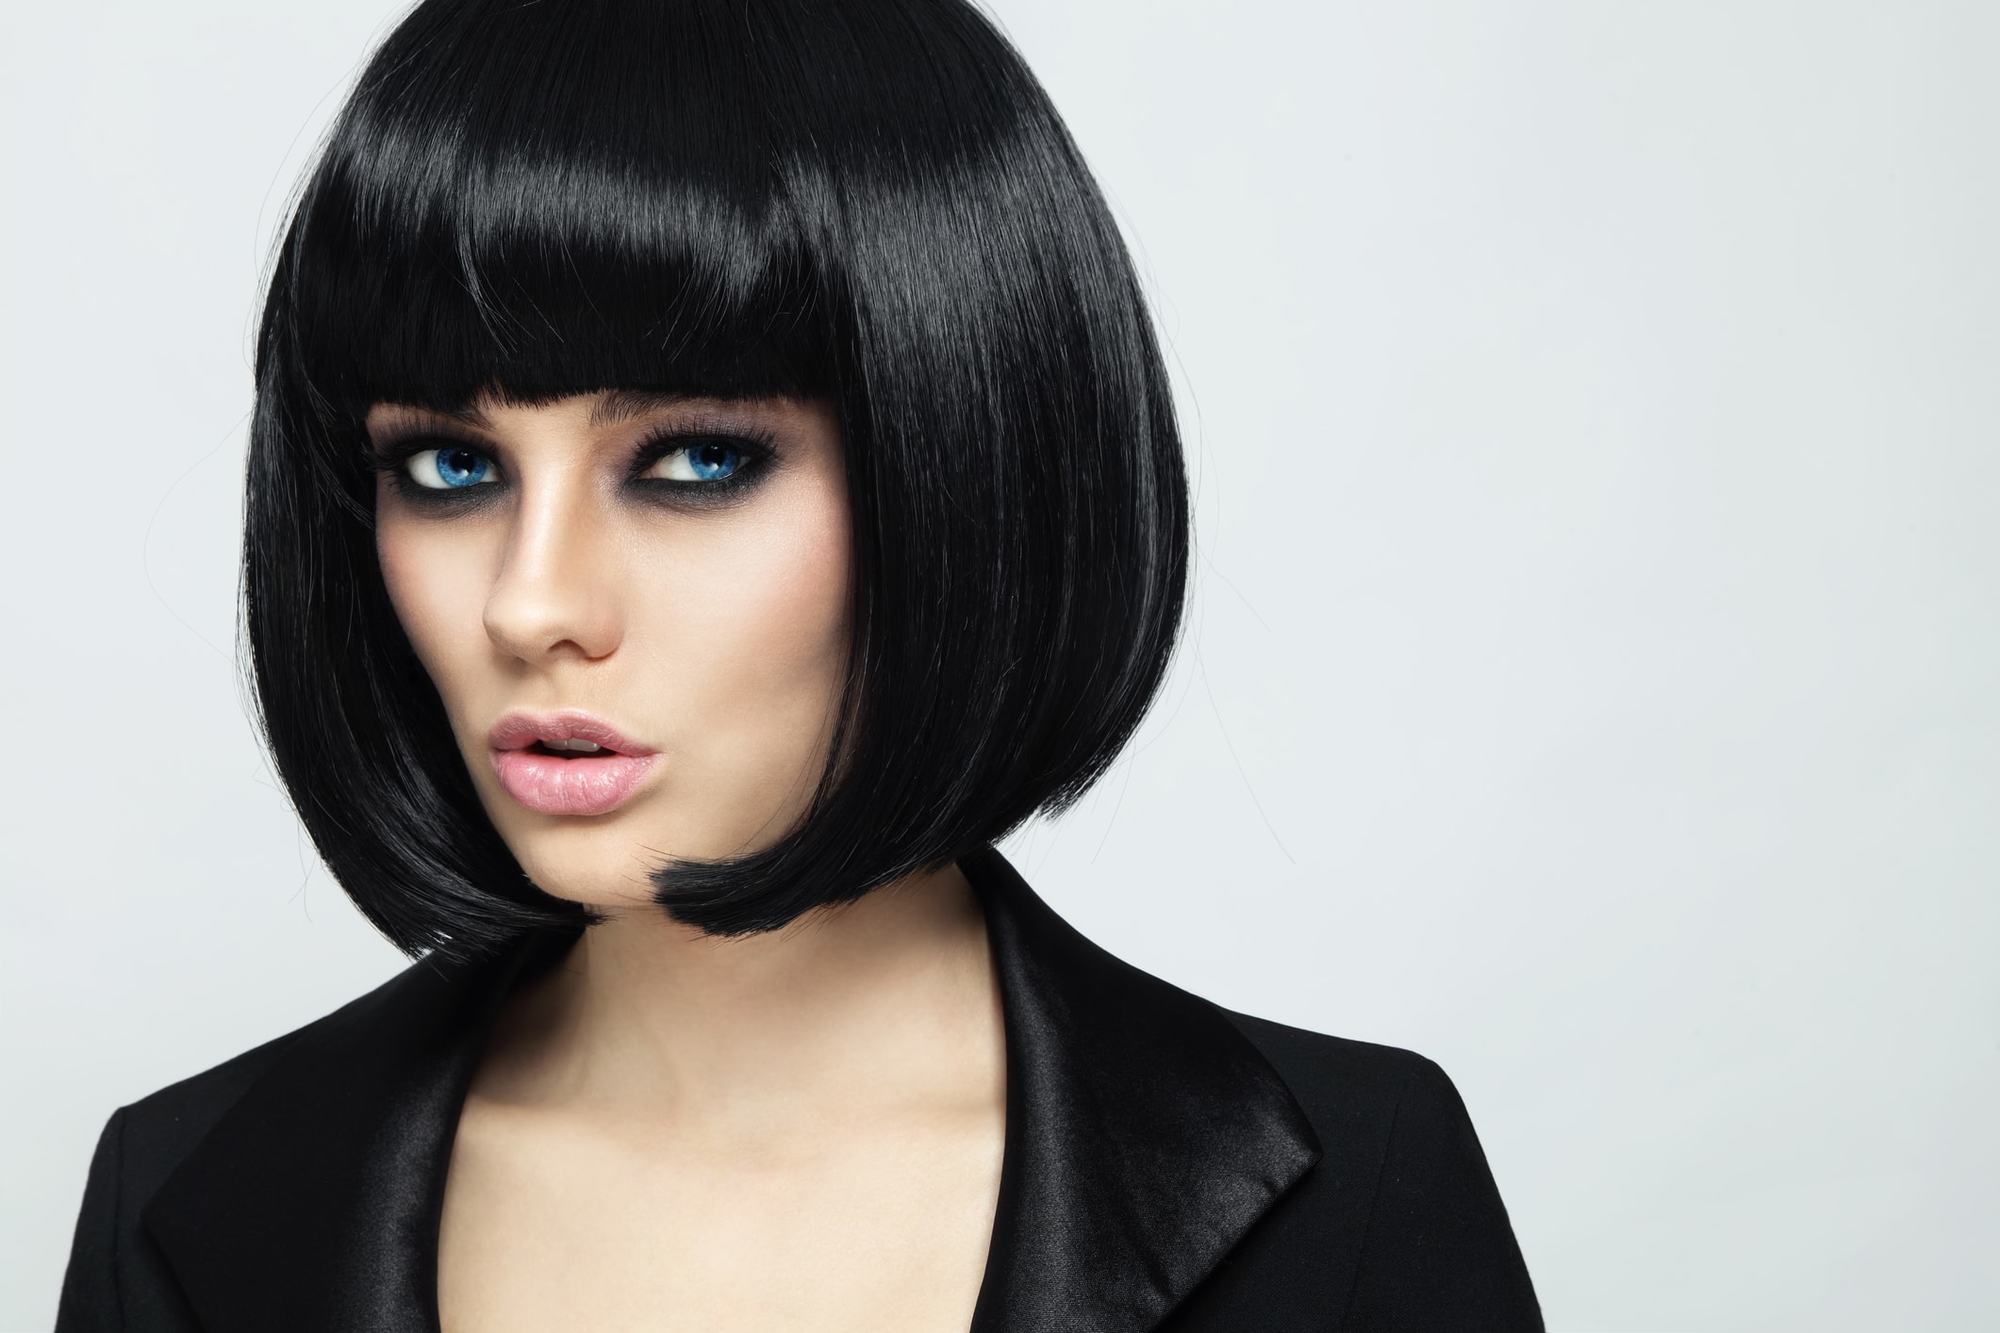 Bobbed Hair Styles: 16 Angled Bob Styles That Are Trending Right Now